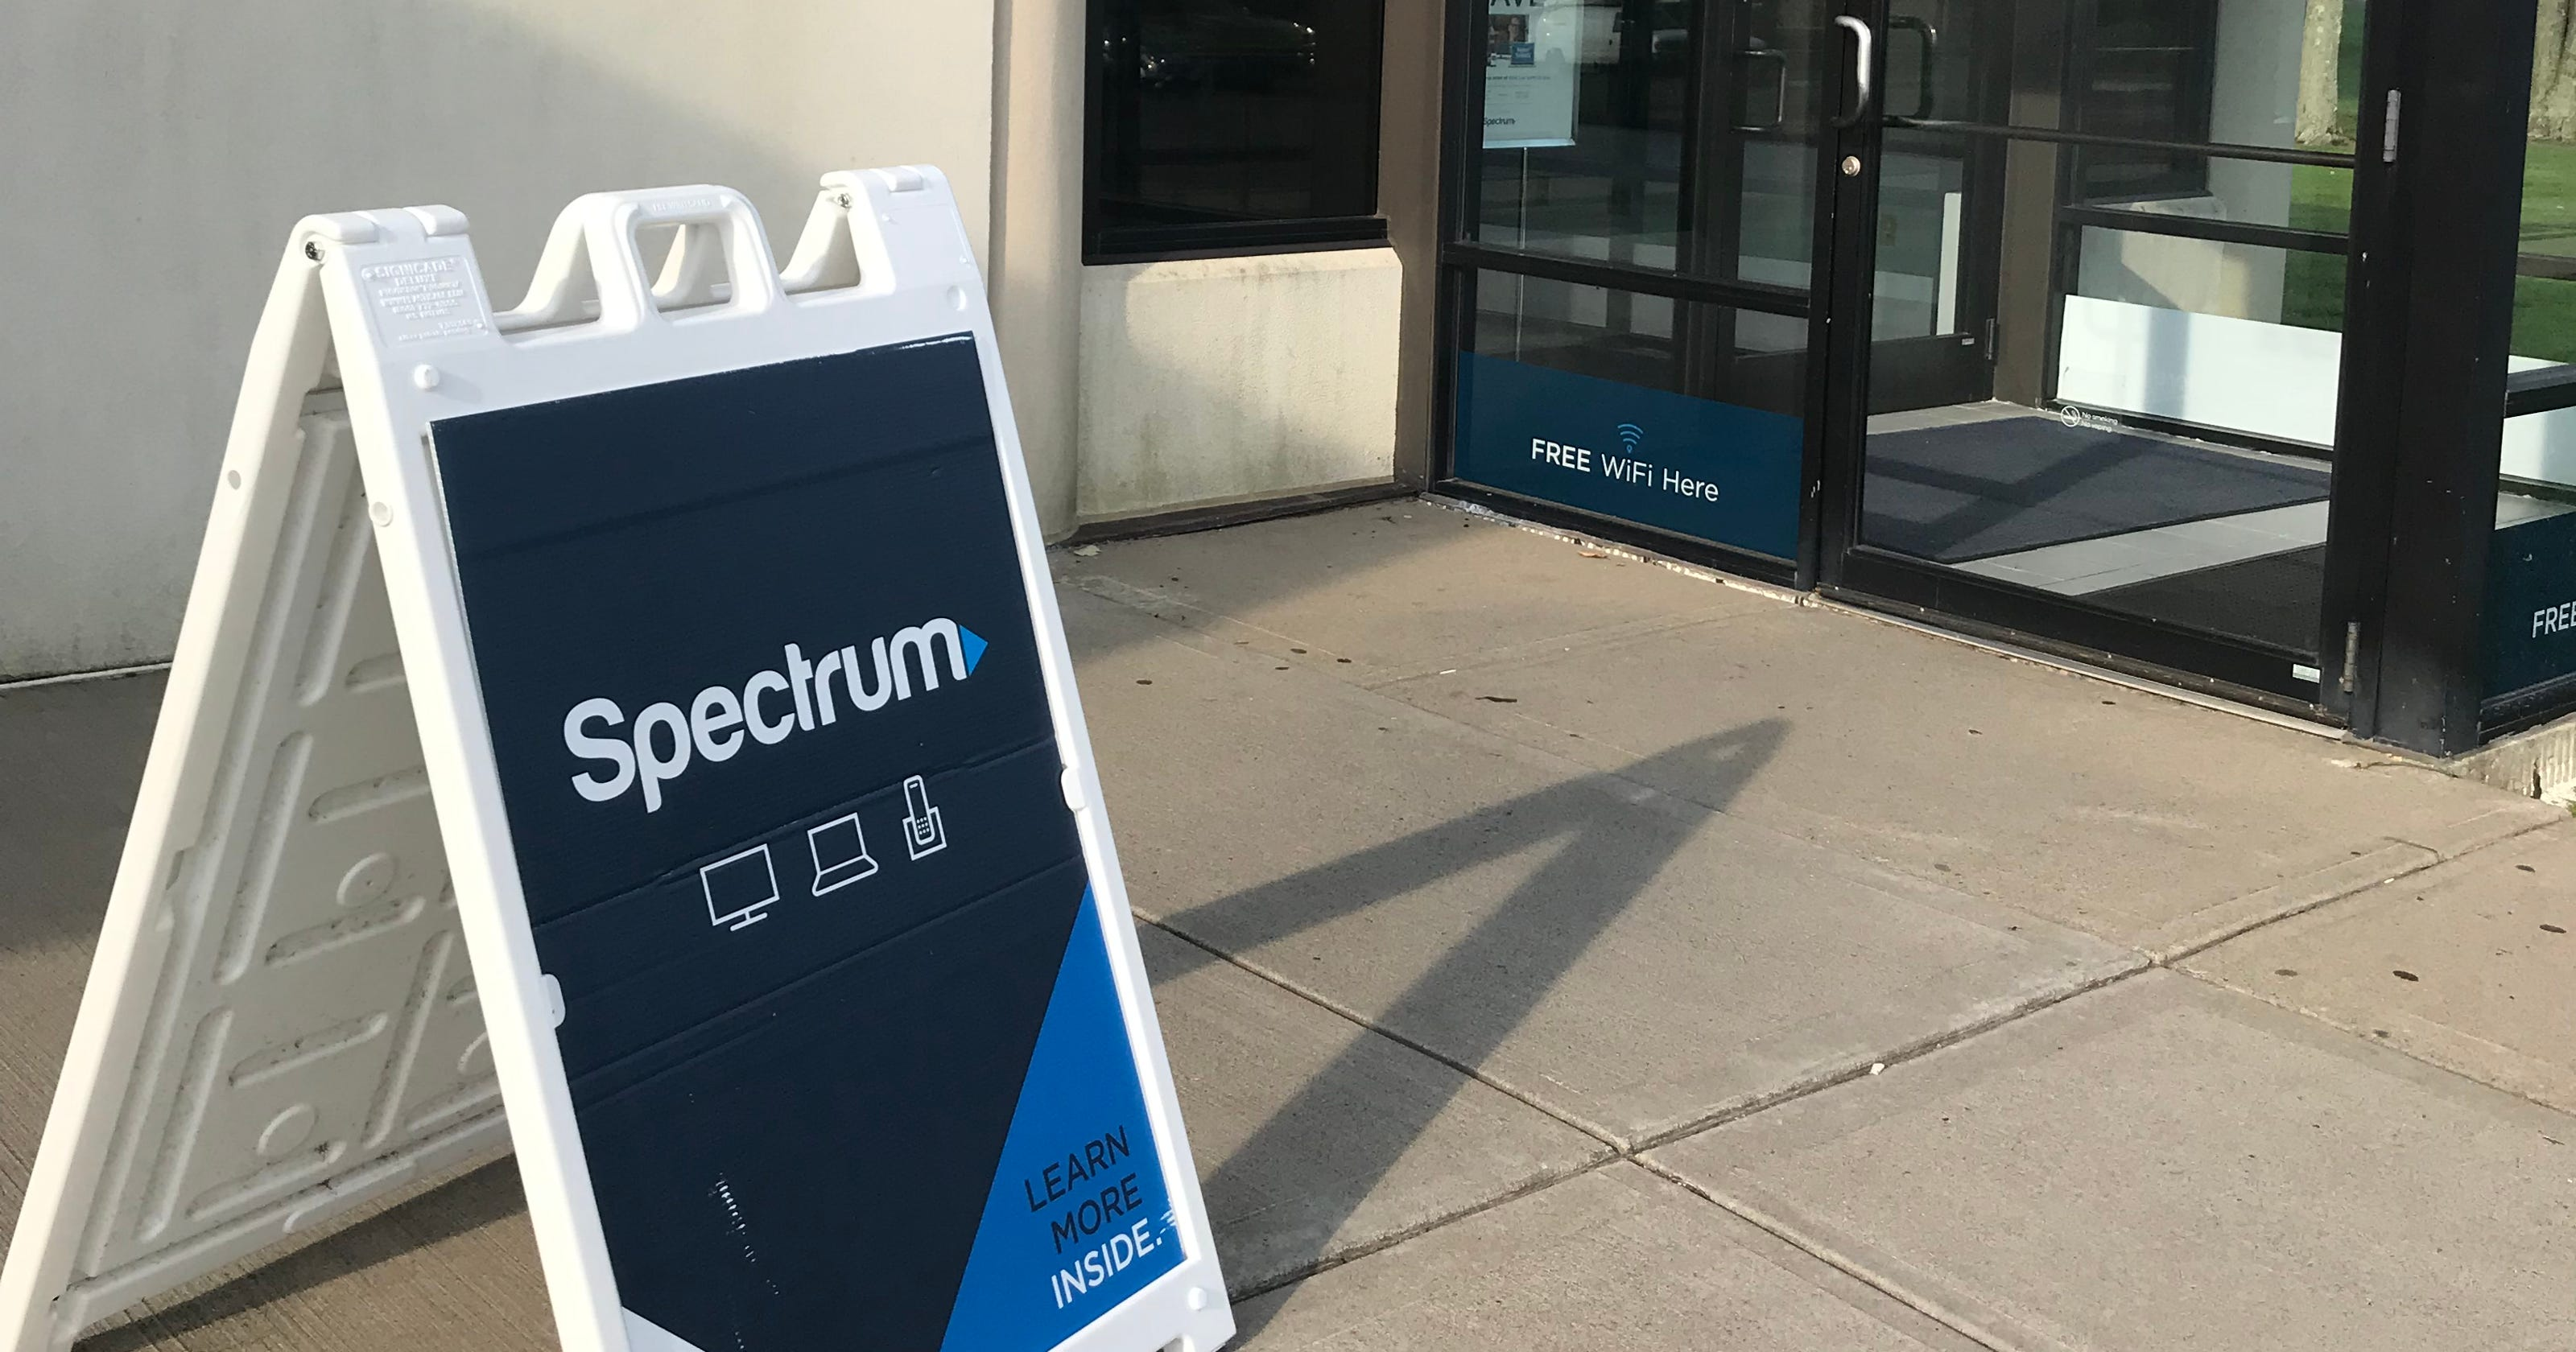 Charter's Spectrum cable system draws anger in New York